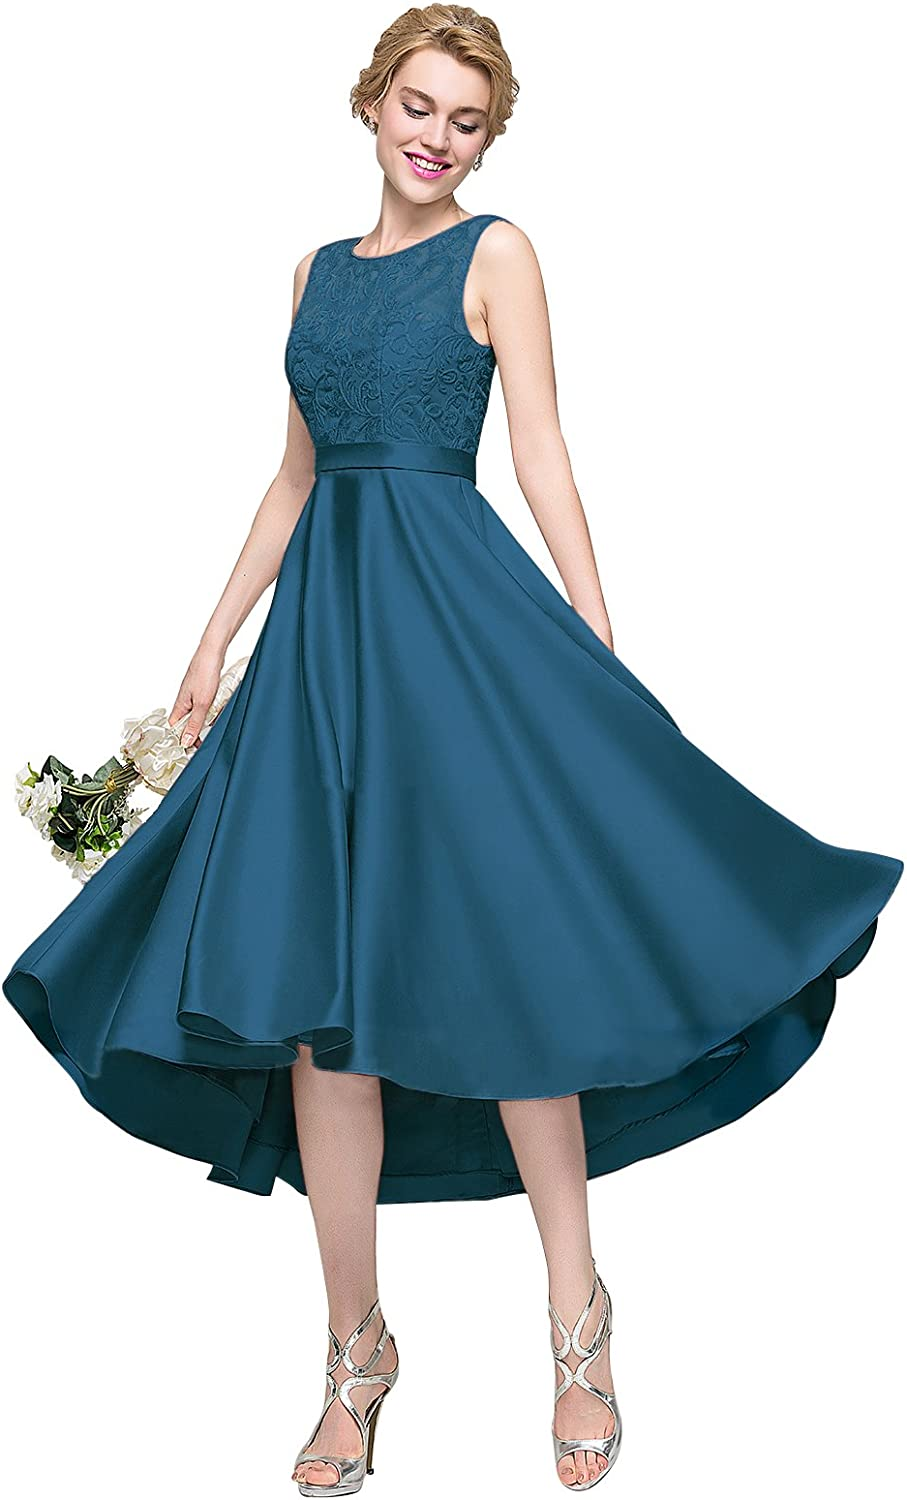 Loffy Lace Applique Junior's Formal Cocktail Homecoming Dresses